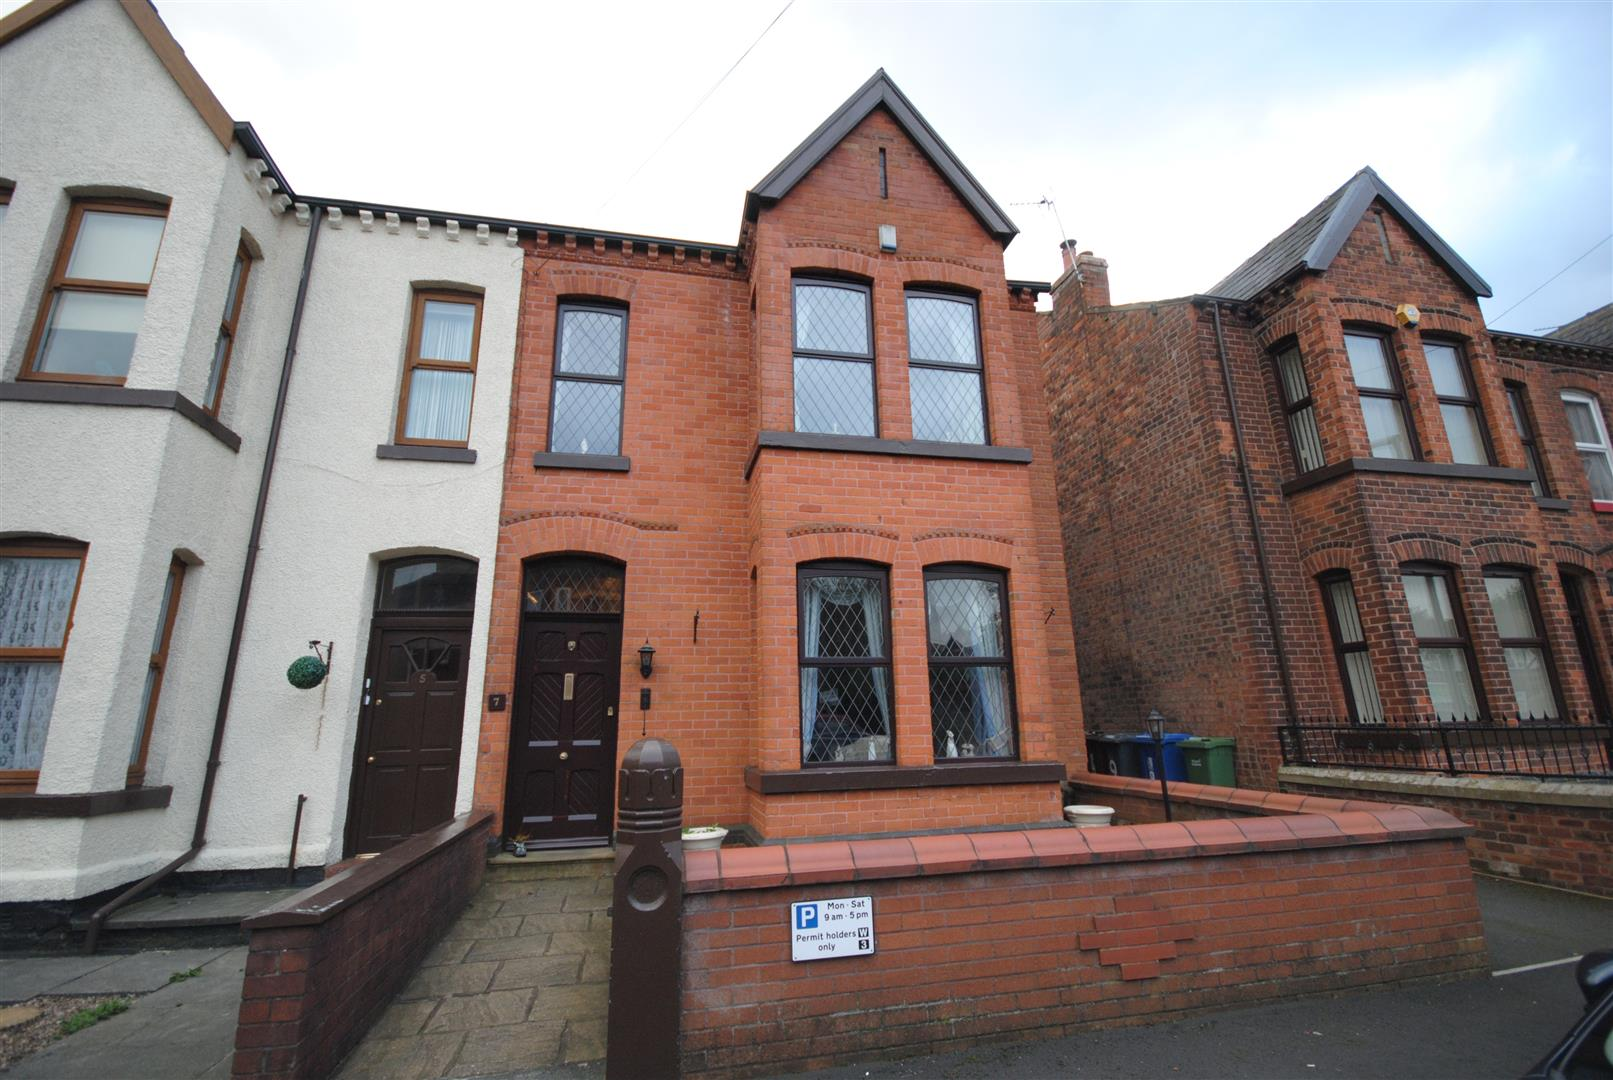 4 Bedrooms Semi Detached House for sale in Park Crescent, Swinley, Wigan